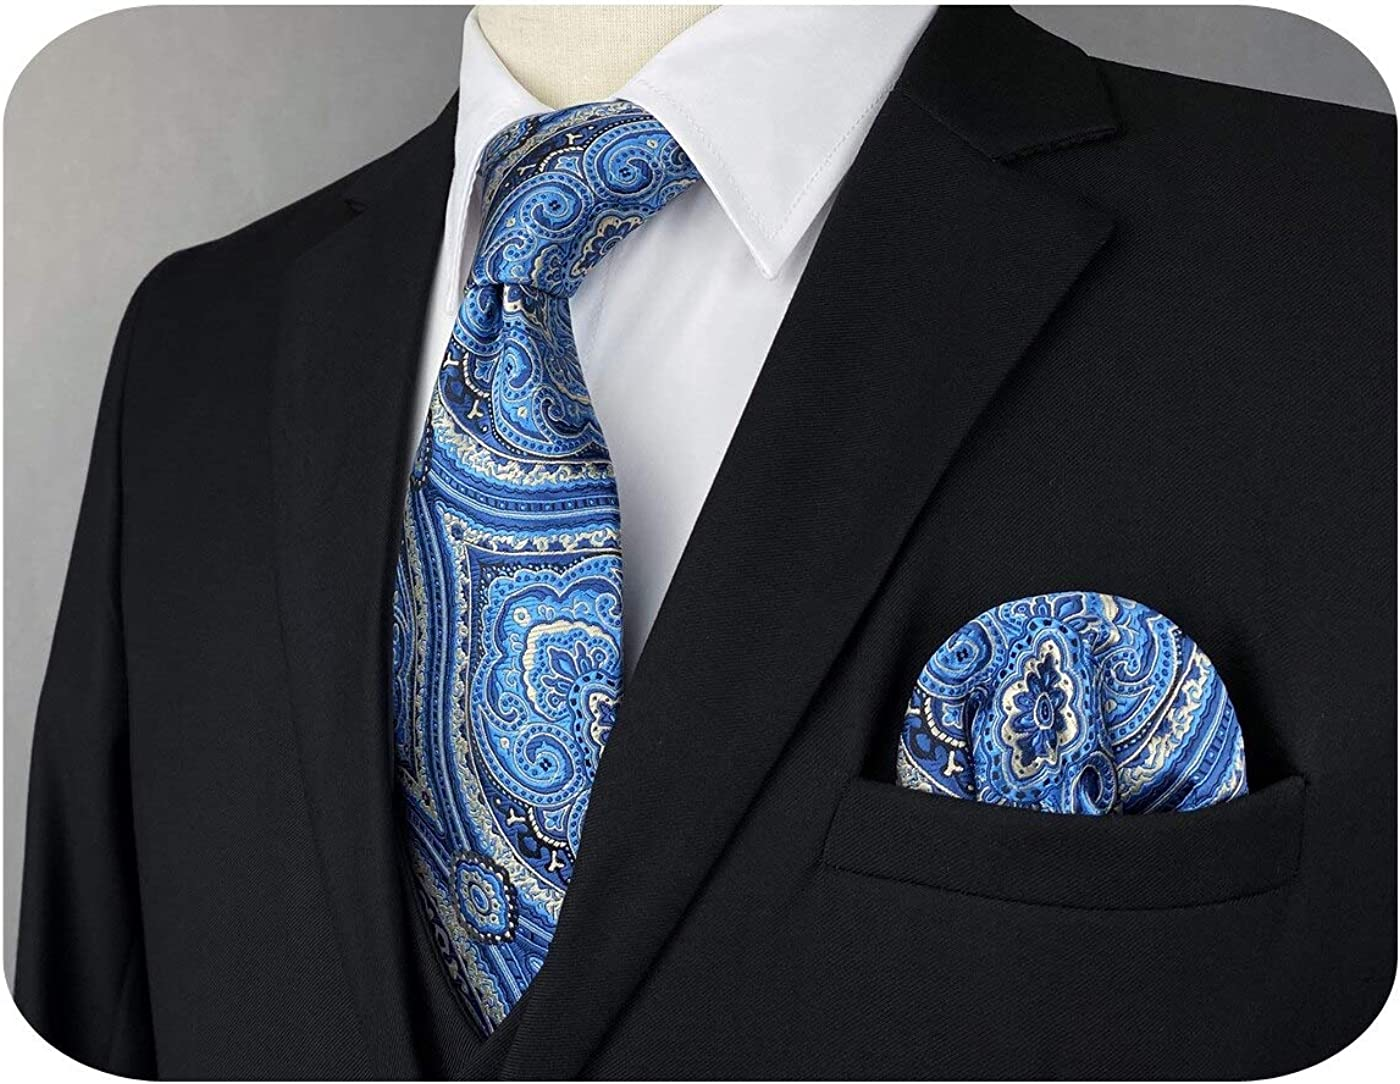 S&W SHLAX&WING Mens Ties Necktie and Hanky Set Blue and Slate Blue